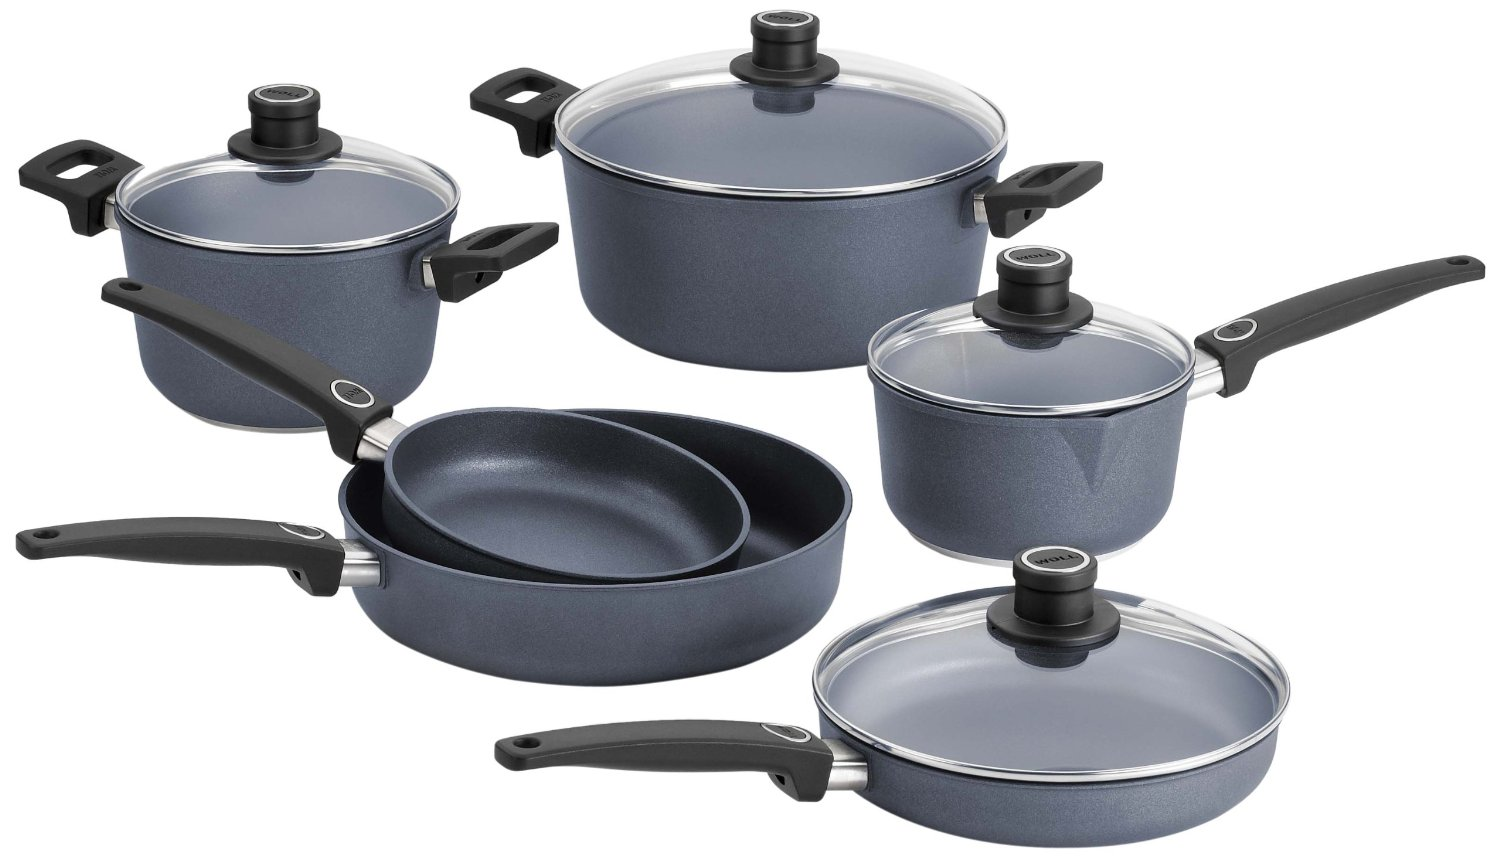 Superbe Woll Diamond Plus Cookware Review